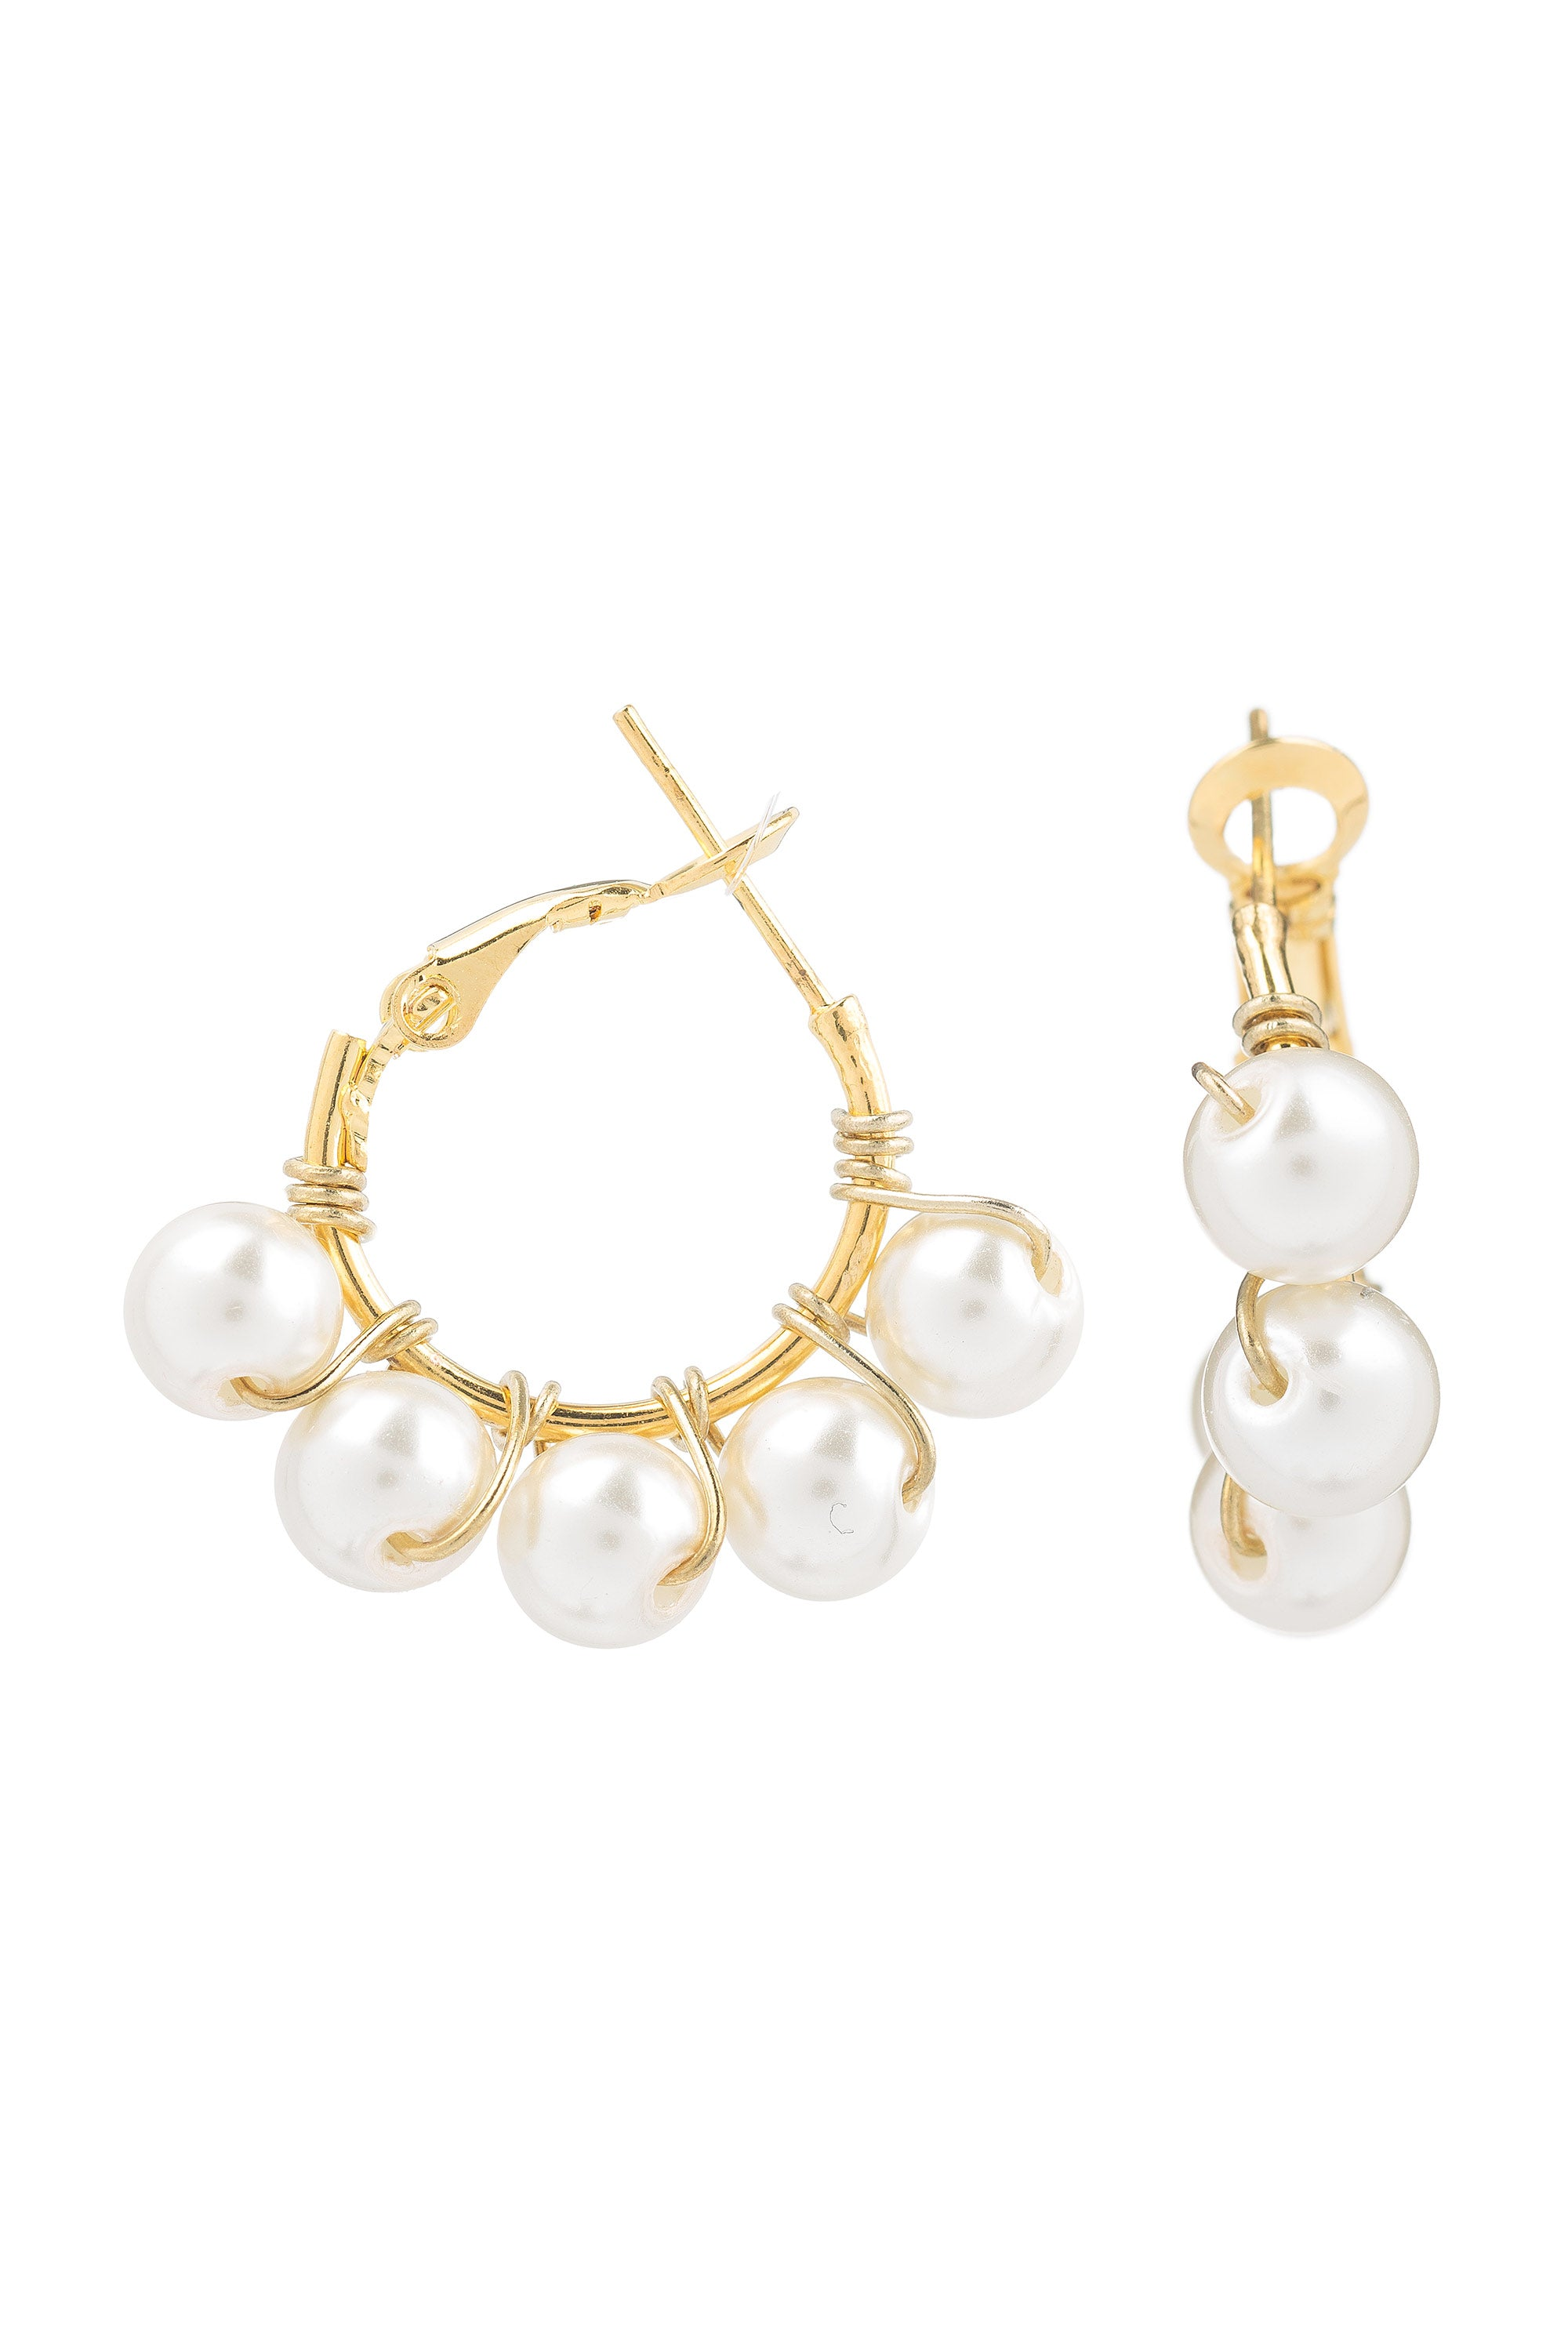 Type 1 Pearl Girl Earrings